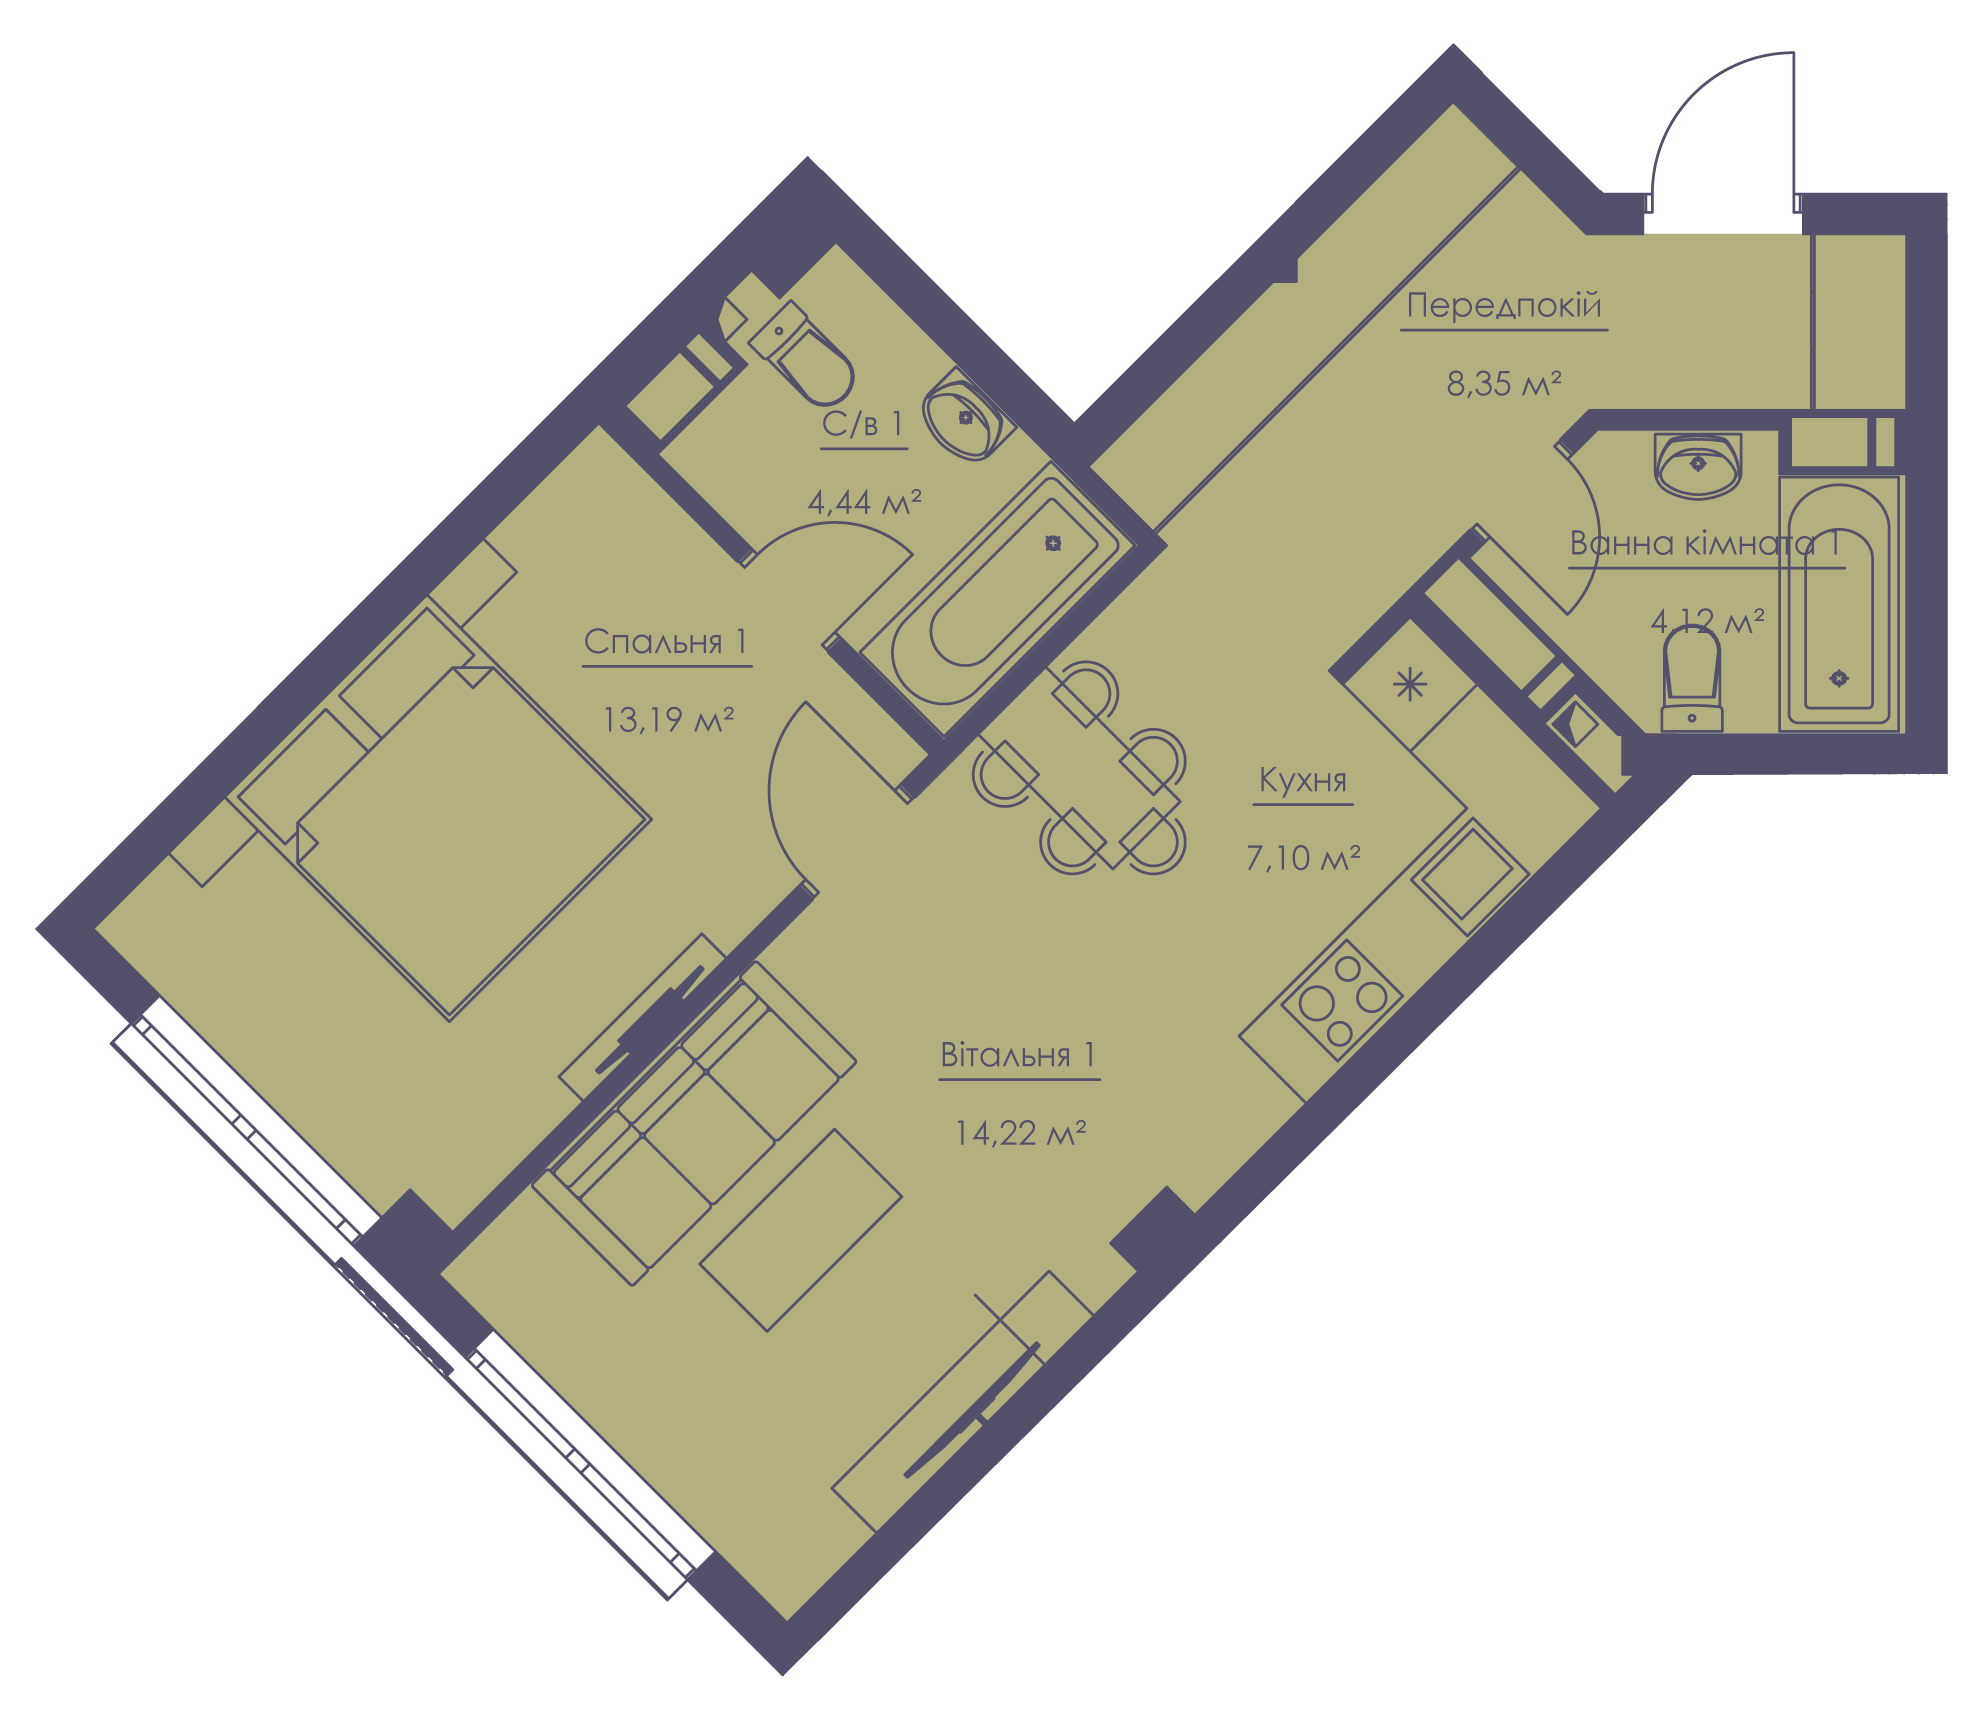 Apartment layout KV_82_2m_1_1_3-1